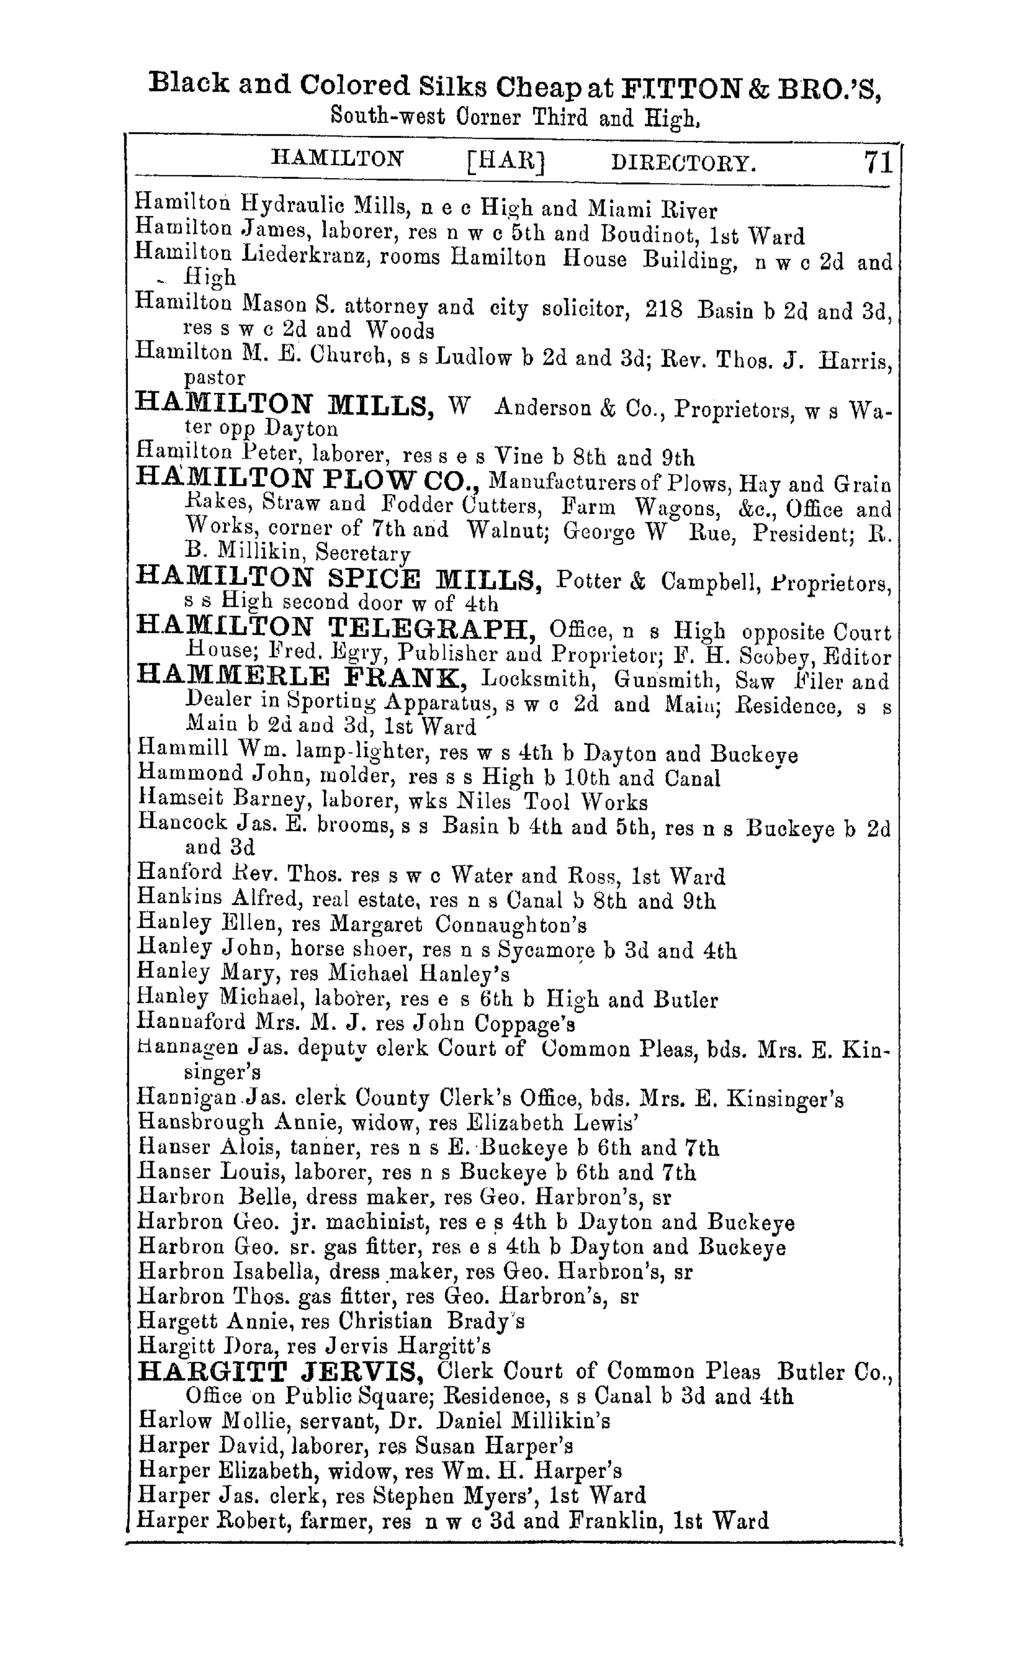 Black and Colored Silks Cheap at FITTON & BRO.'S, South-west Corner Third and High. HAMILTON [HAU] DIRECTORY. 71 Hamilton